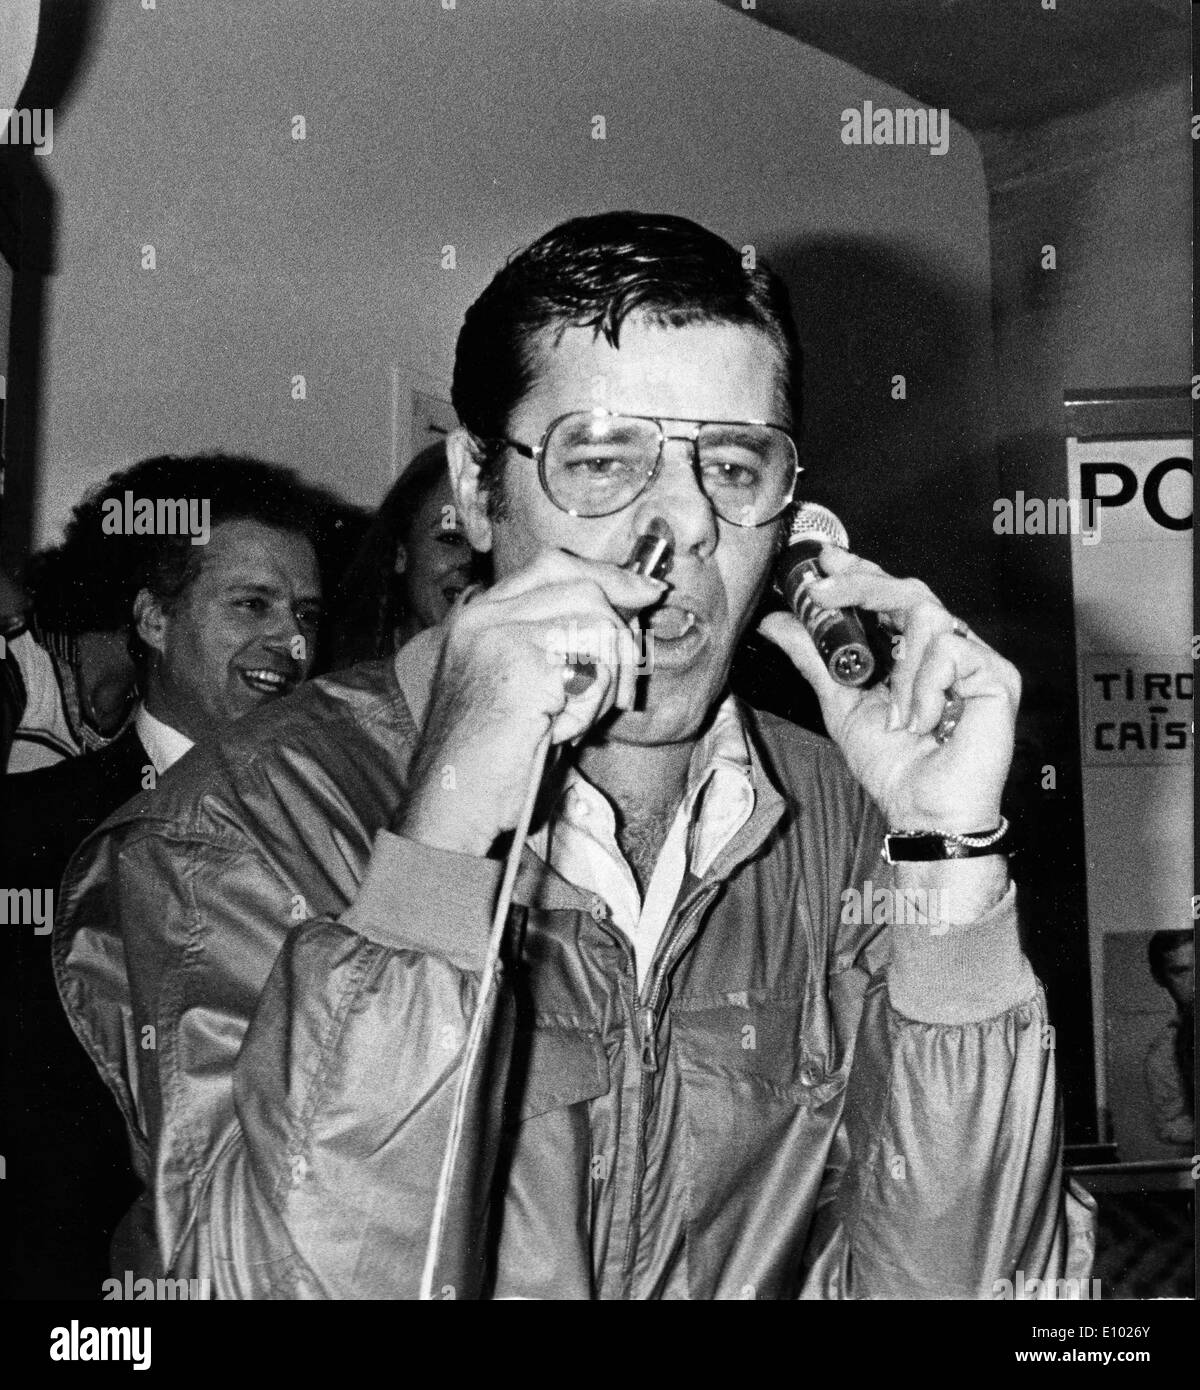 Comedian Jerry Lewis goofs around at premiere - Stock Image